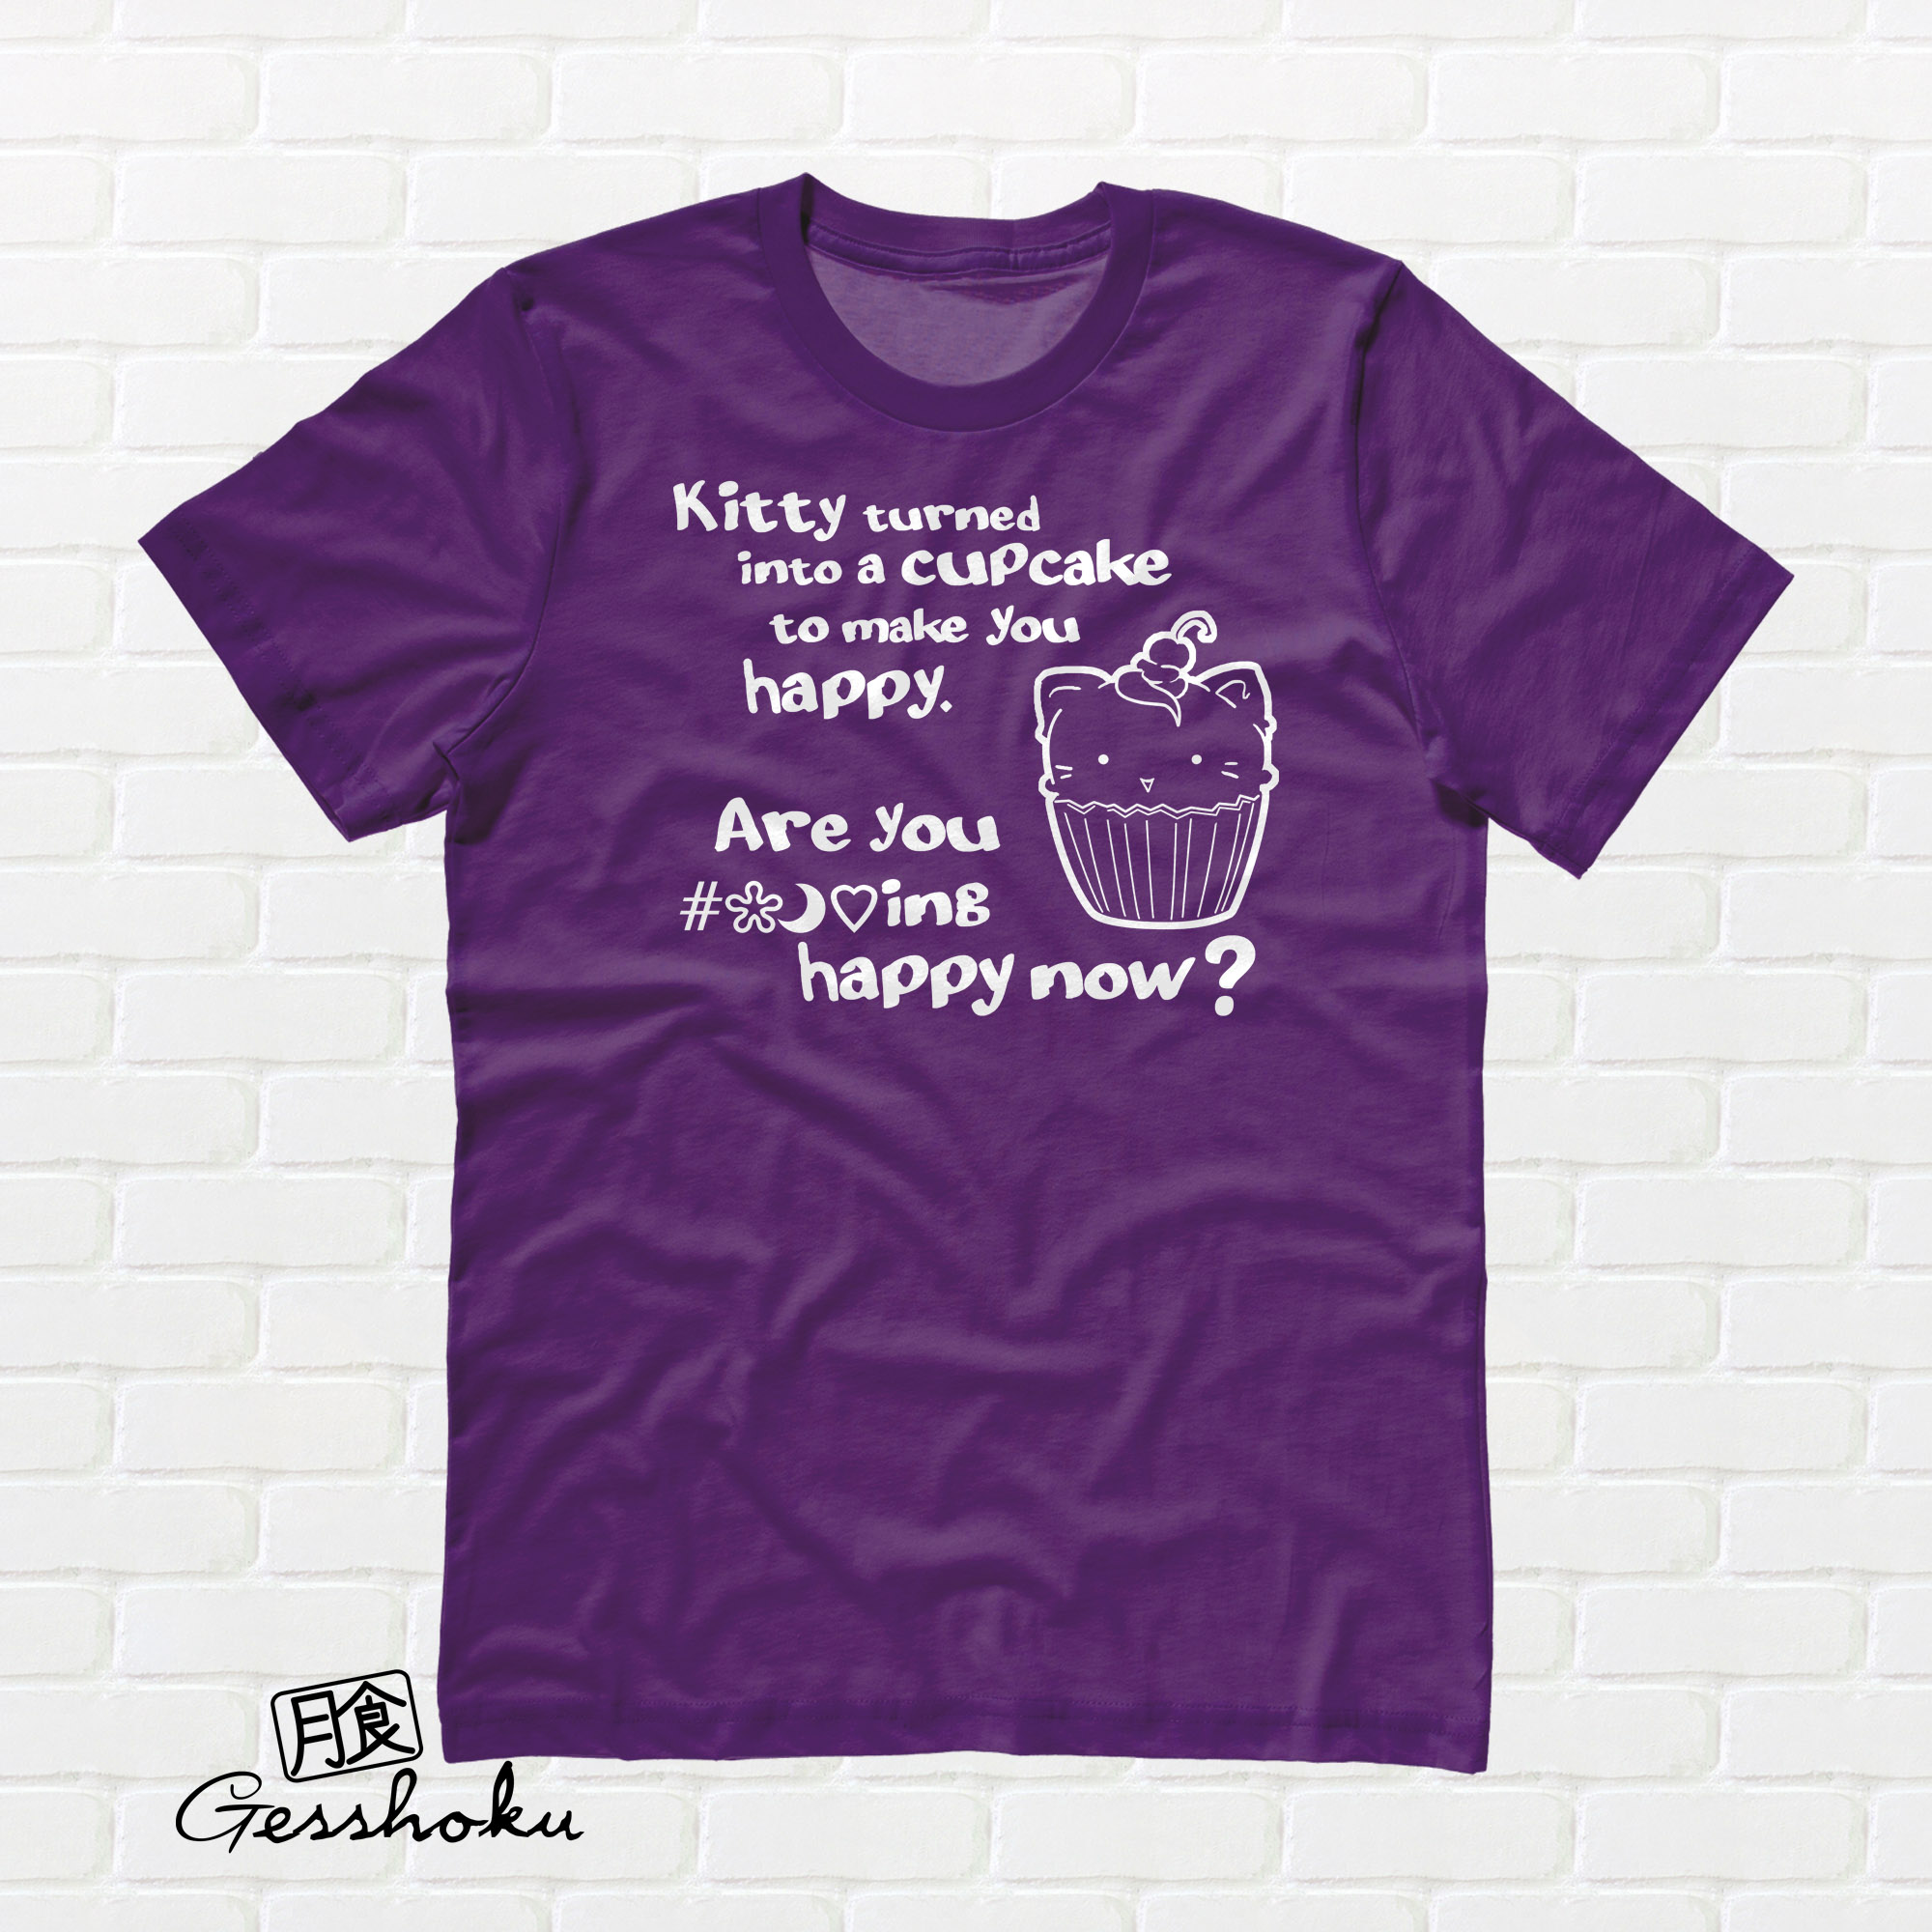 Kitty Turned into a Cupcake T-shirt - Purple